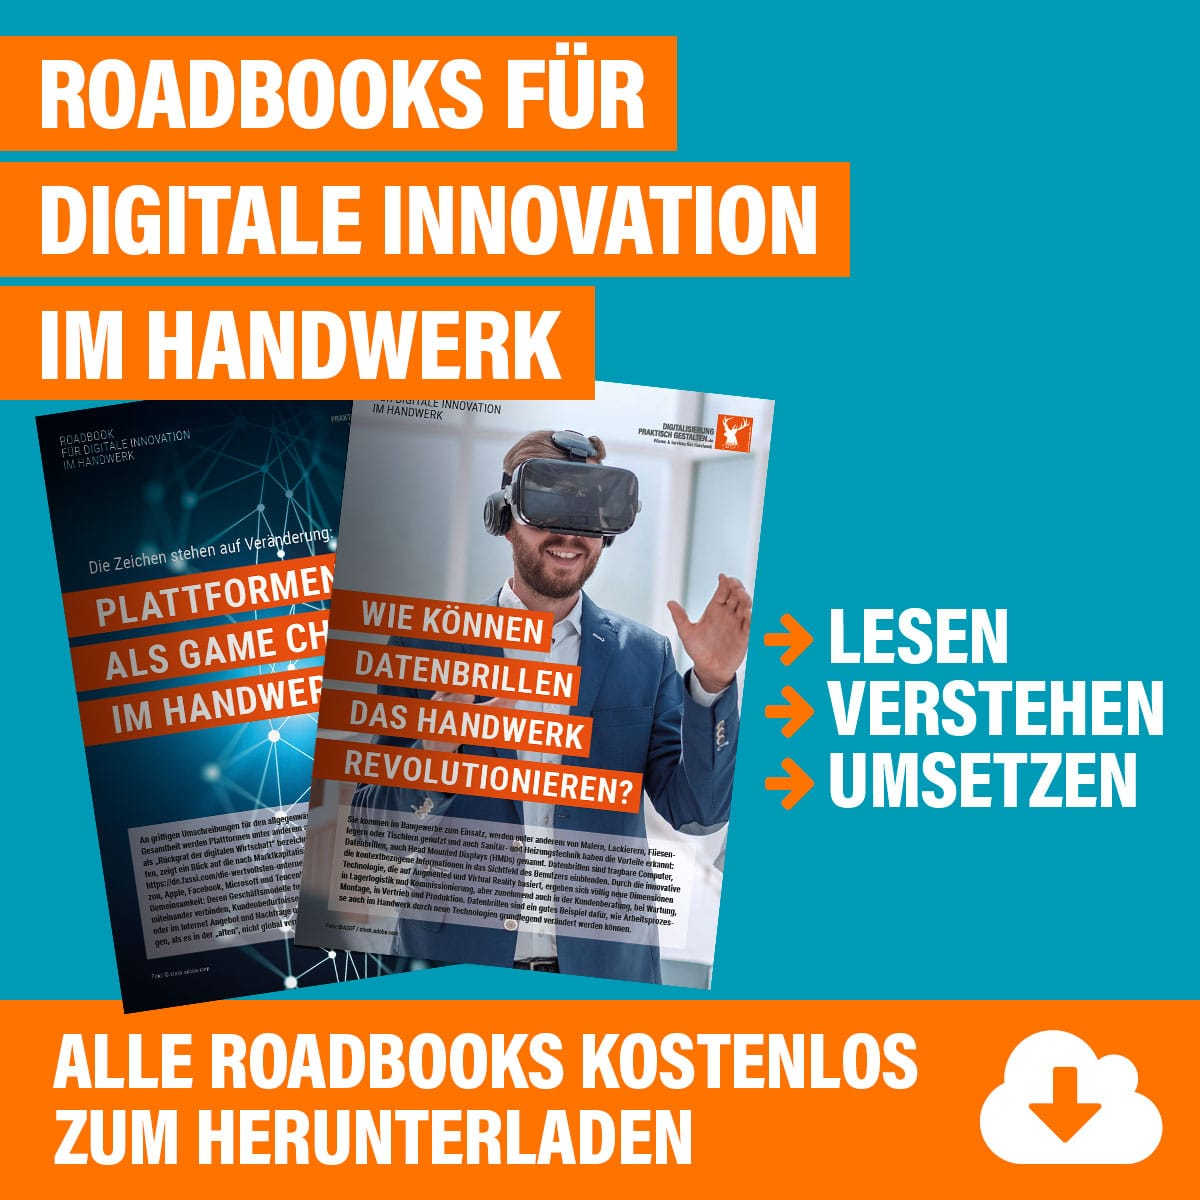 Roadbooks für digitale Innovation im Handwerk